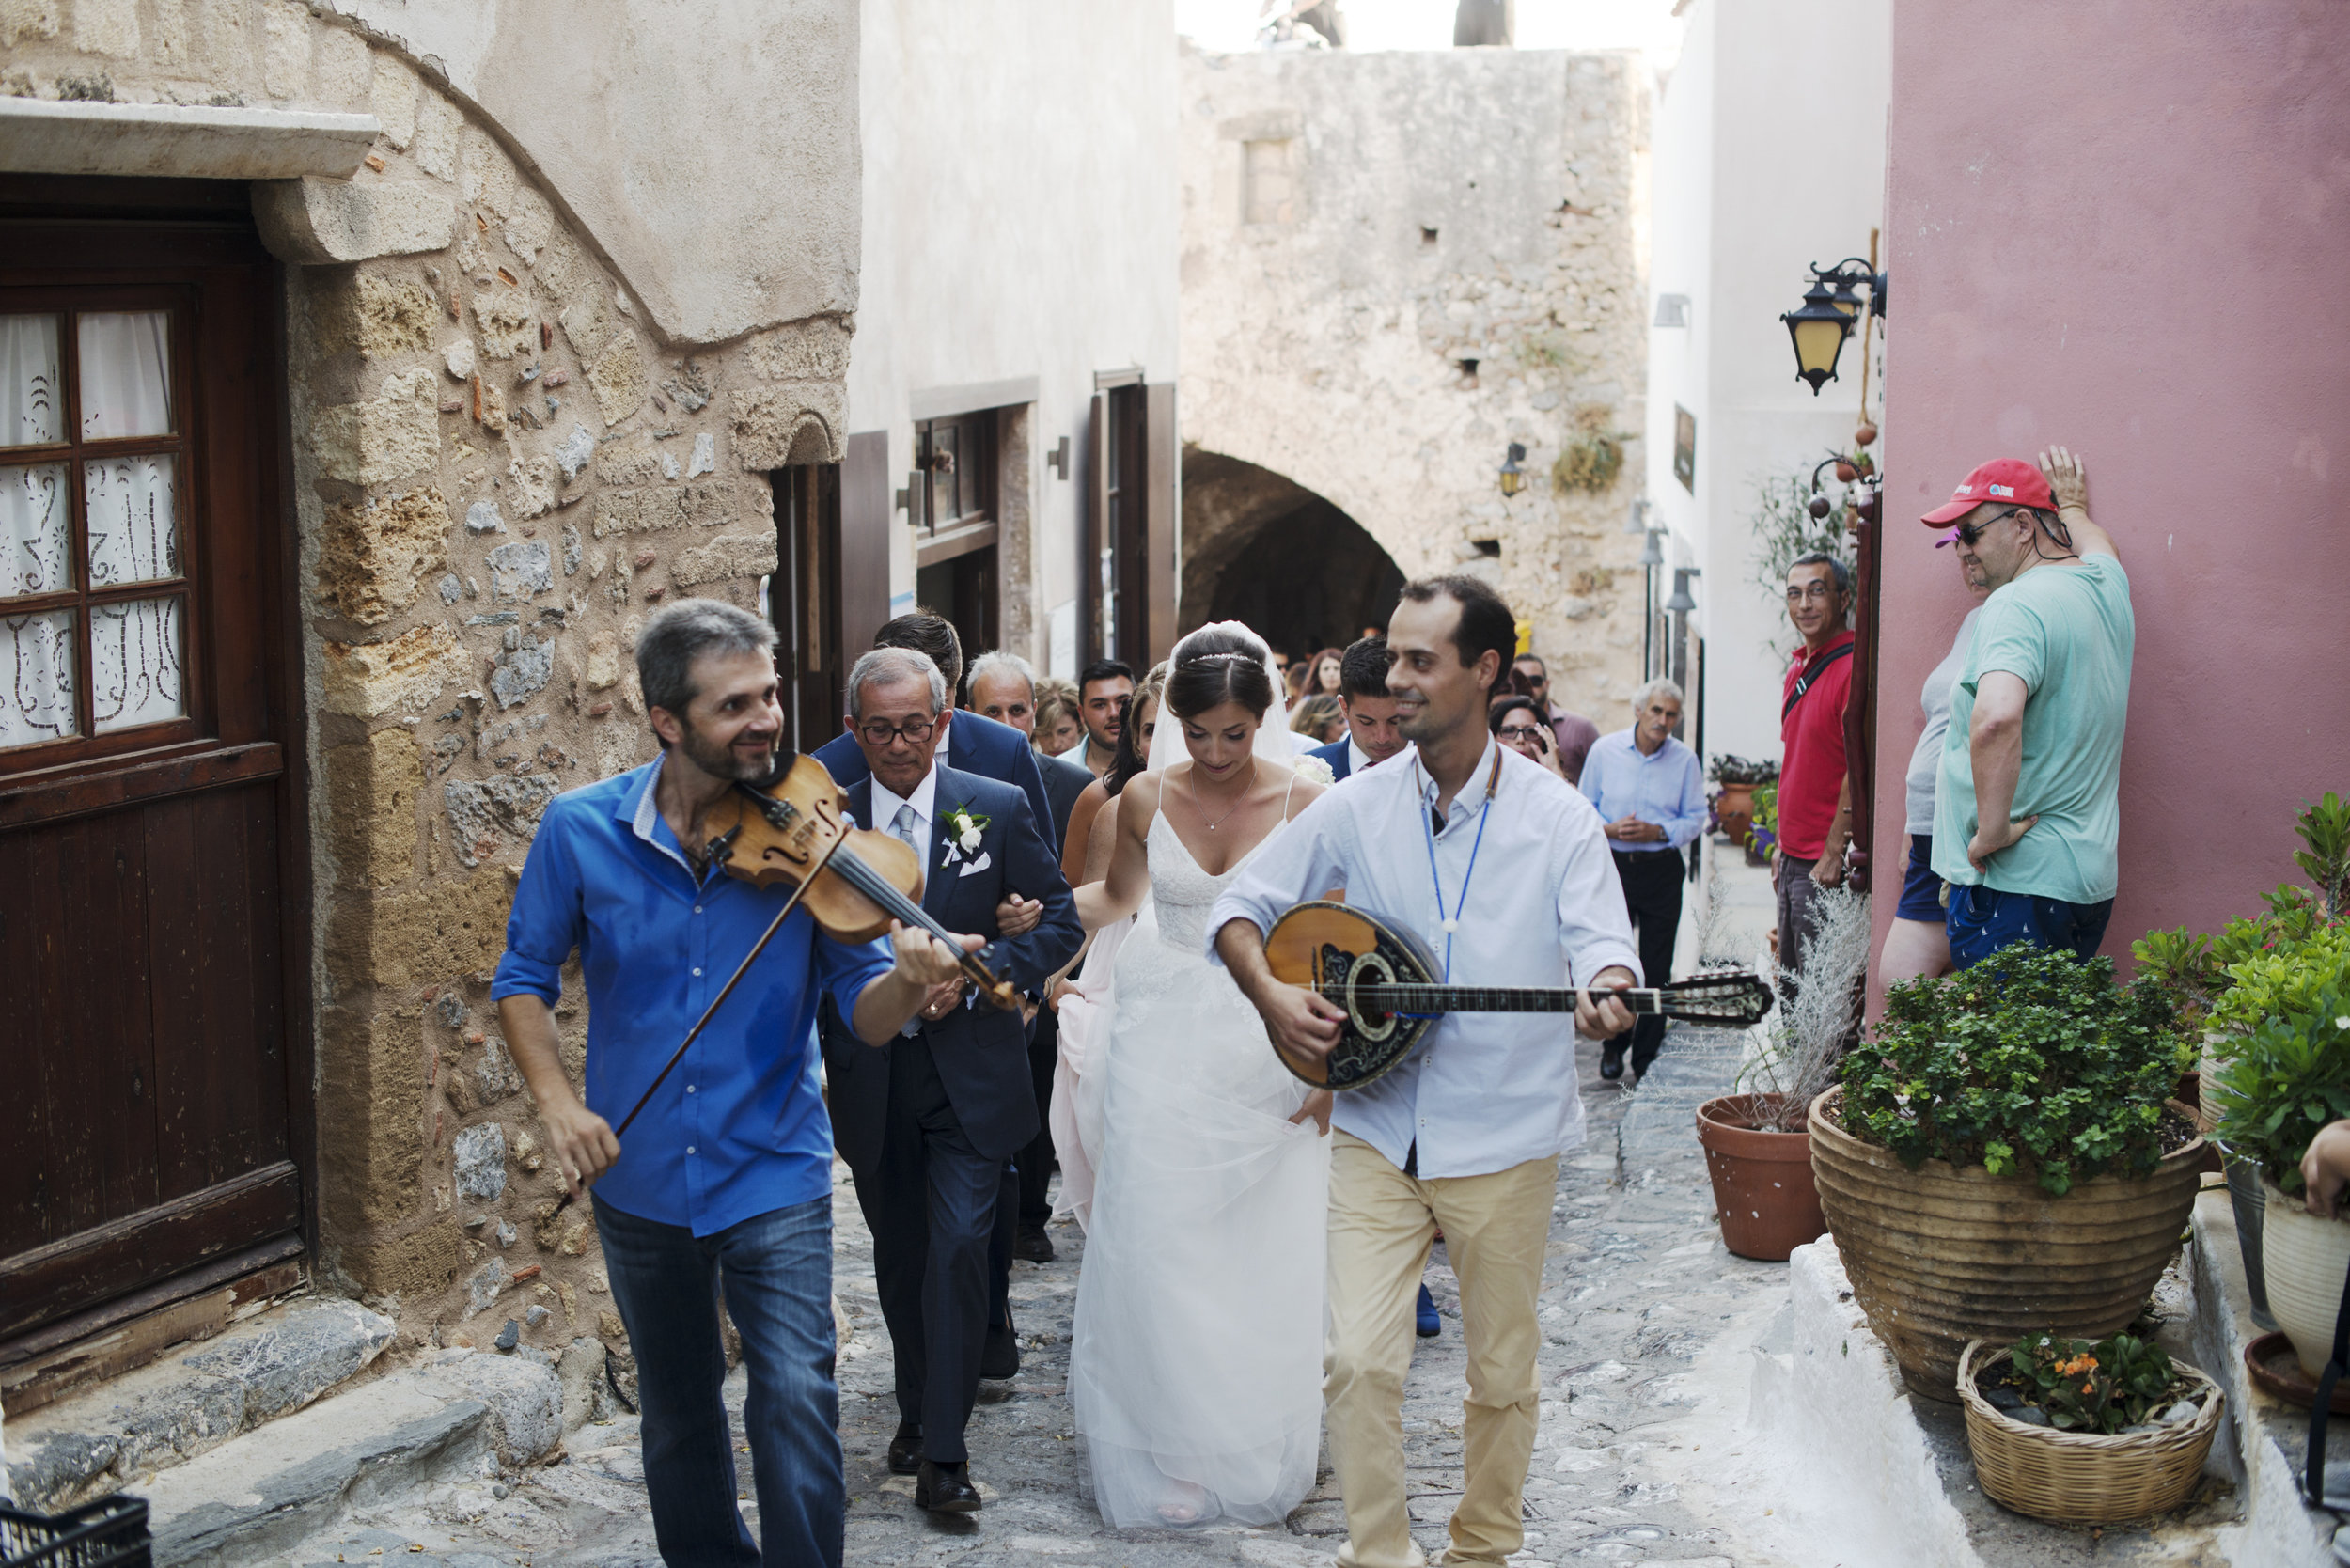 RosewoodWeddingPhotos-DestinationWeddingPhotographer-Greece-Monemvasia-DestinationWedding-WeddingsinGreece-GreekWedding